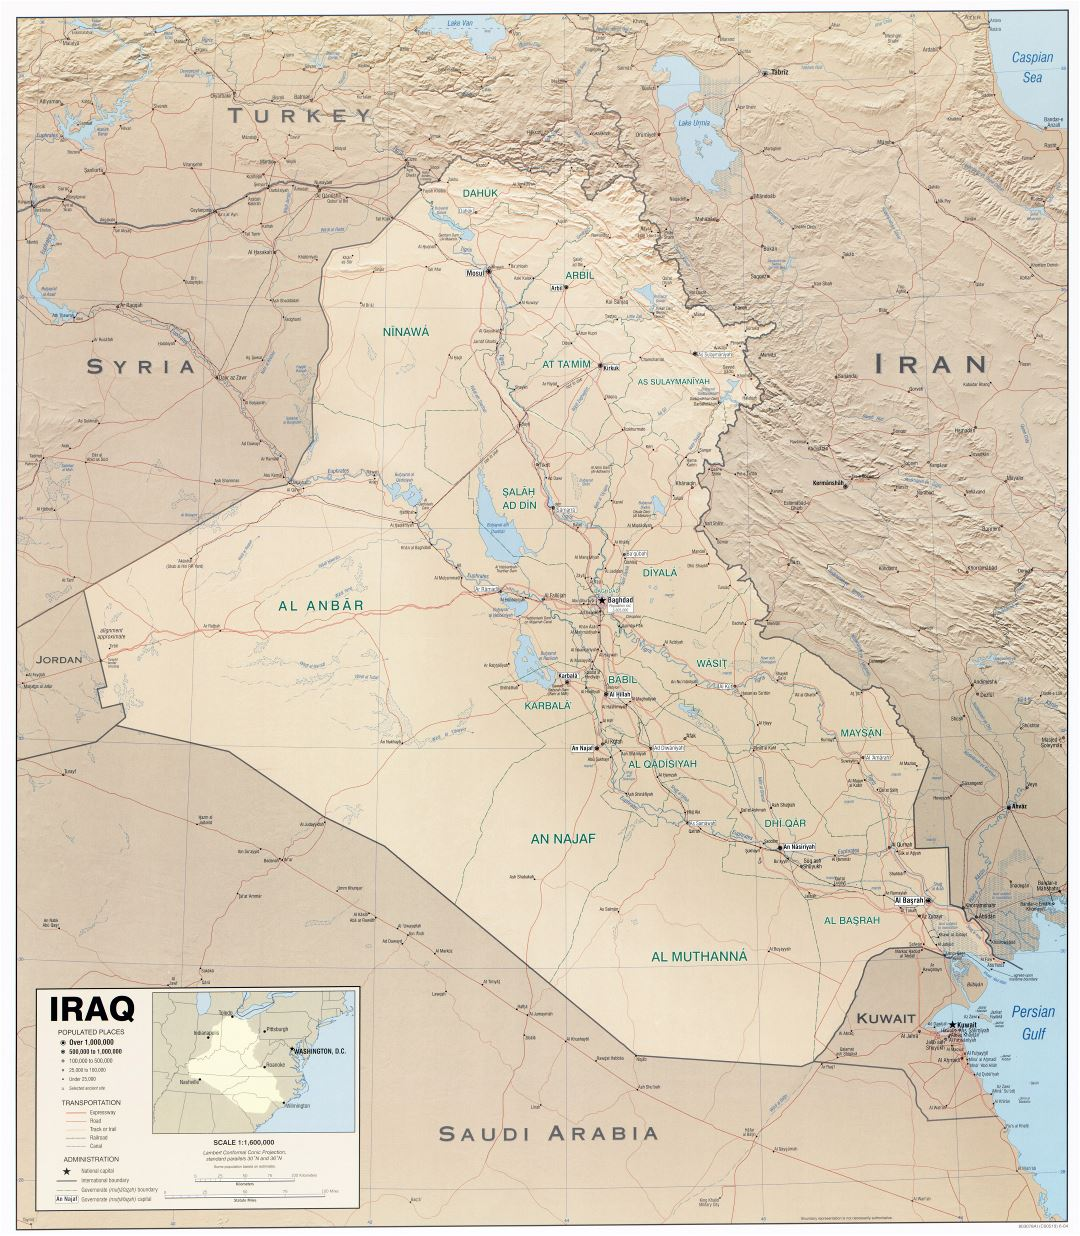 Large scale political map of Iraq with relief and other marks - 2004